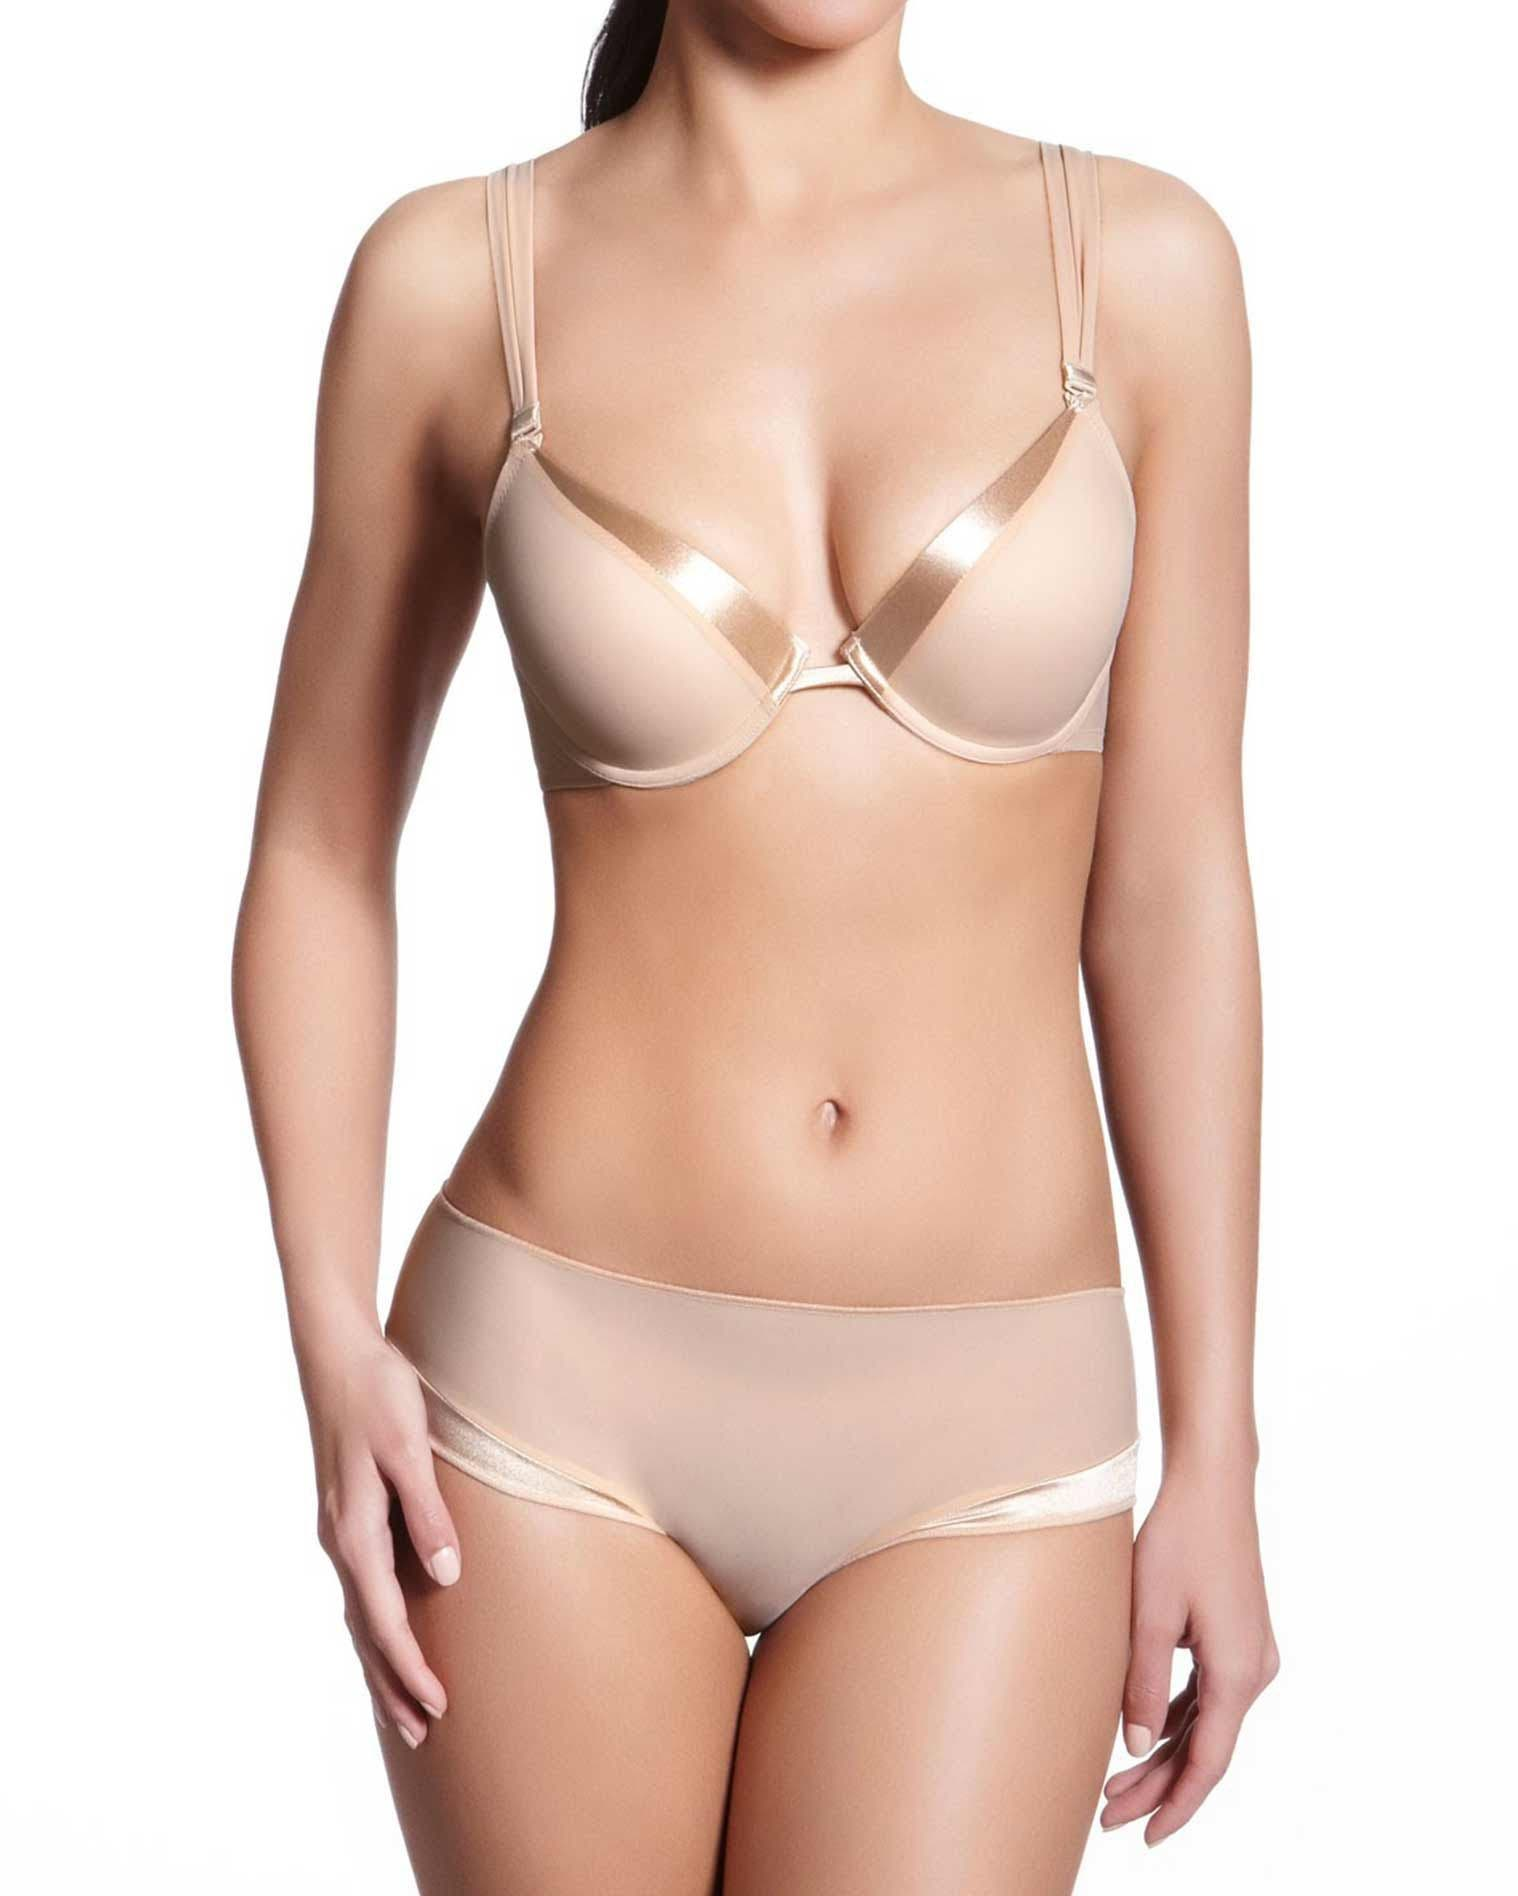 Soutien-gorge push-up moulé - Dune